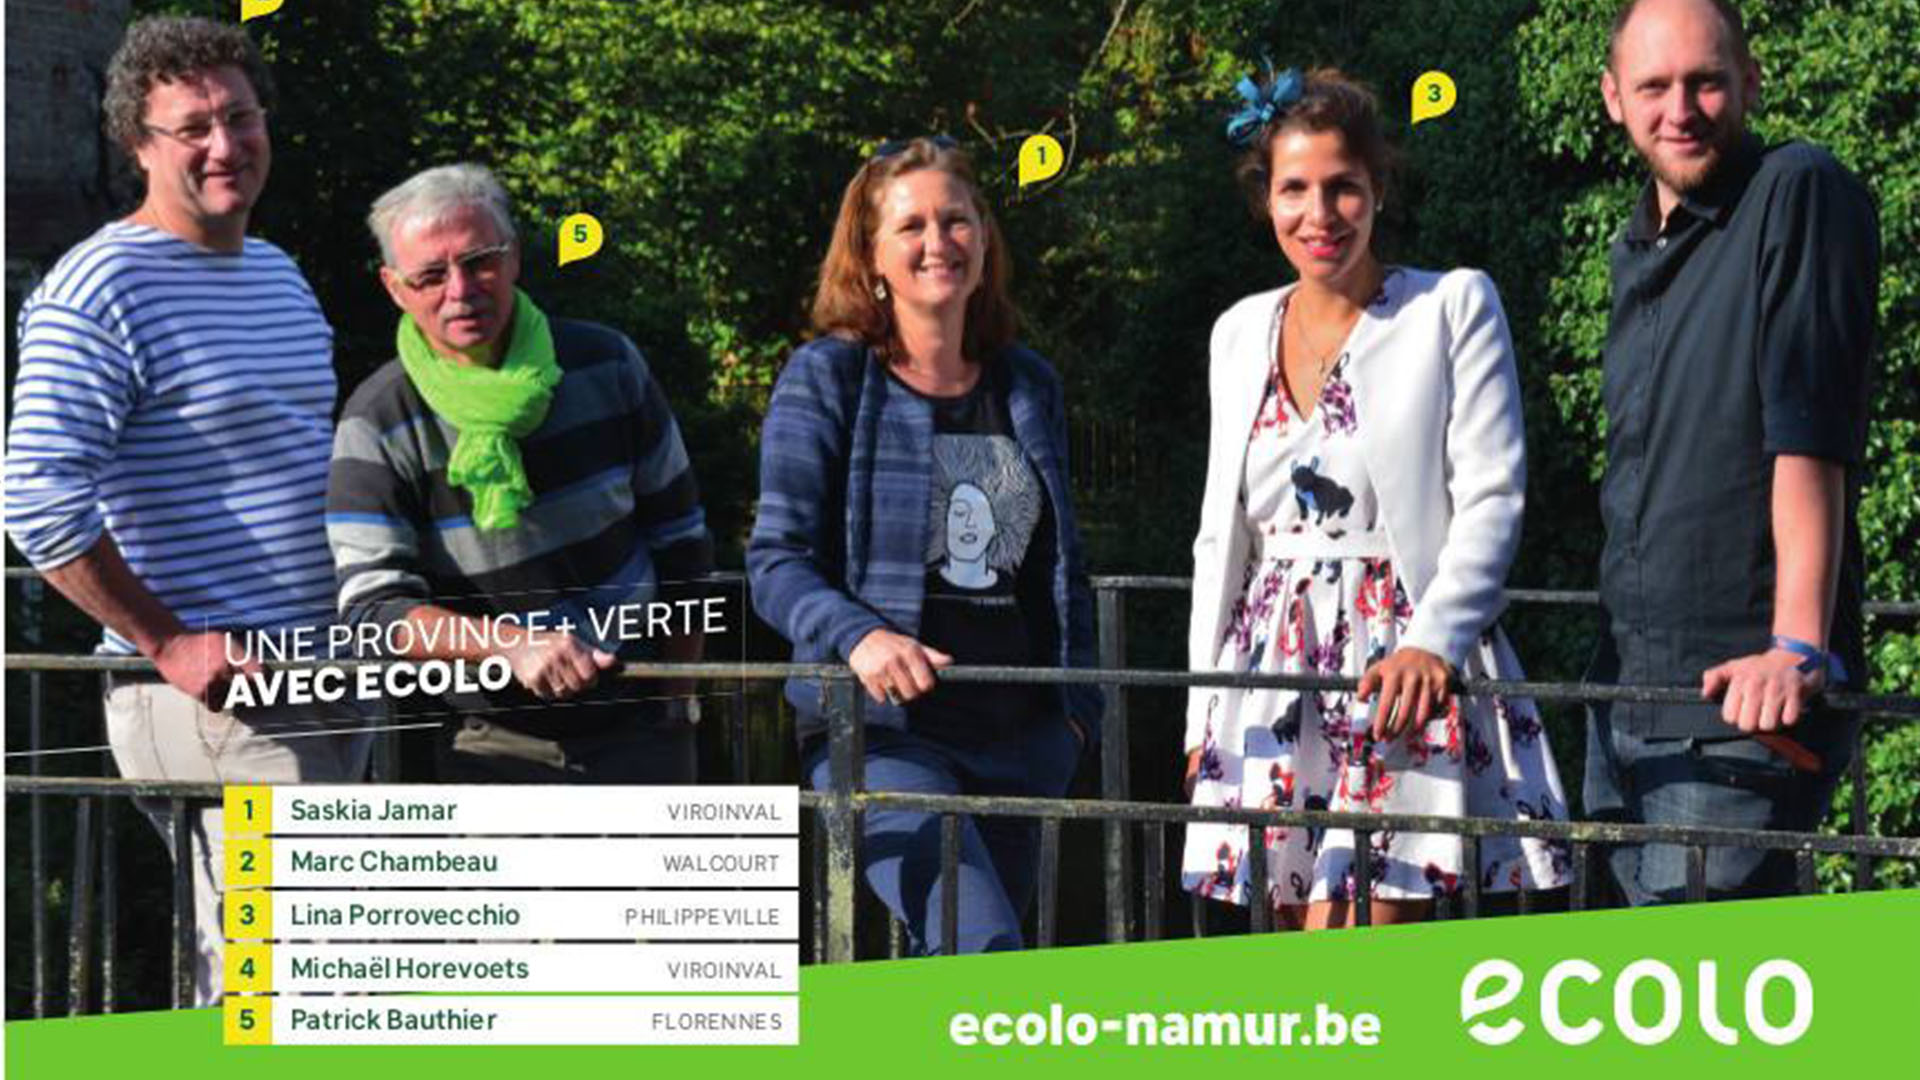 Photo des candidats Ecolo pour les provinciales district de Philippeville